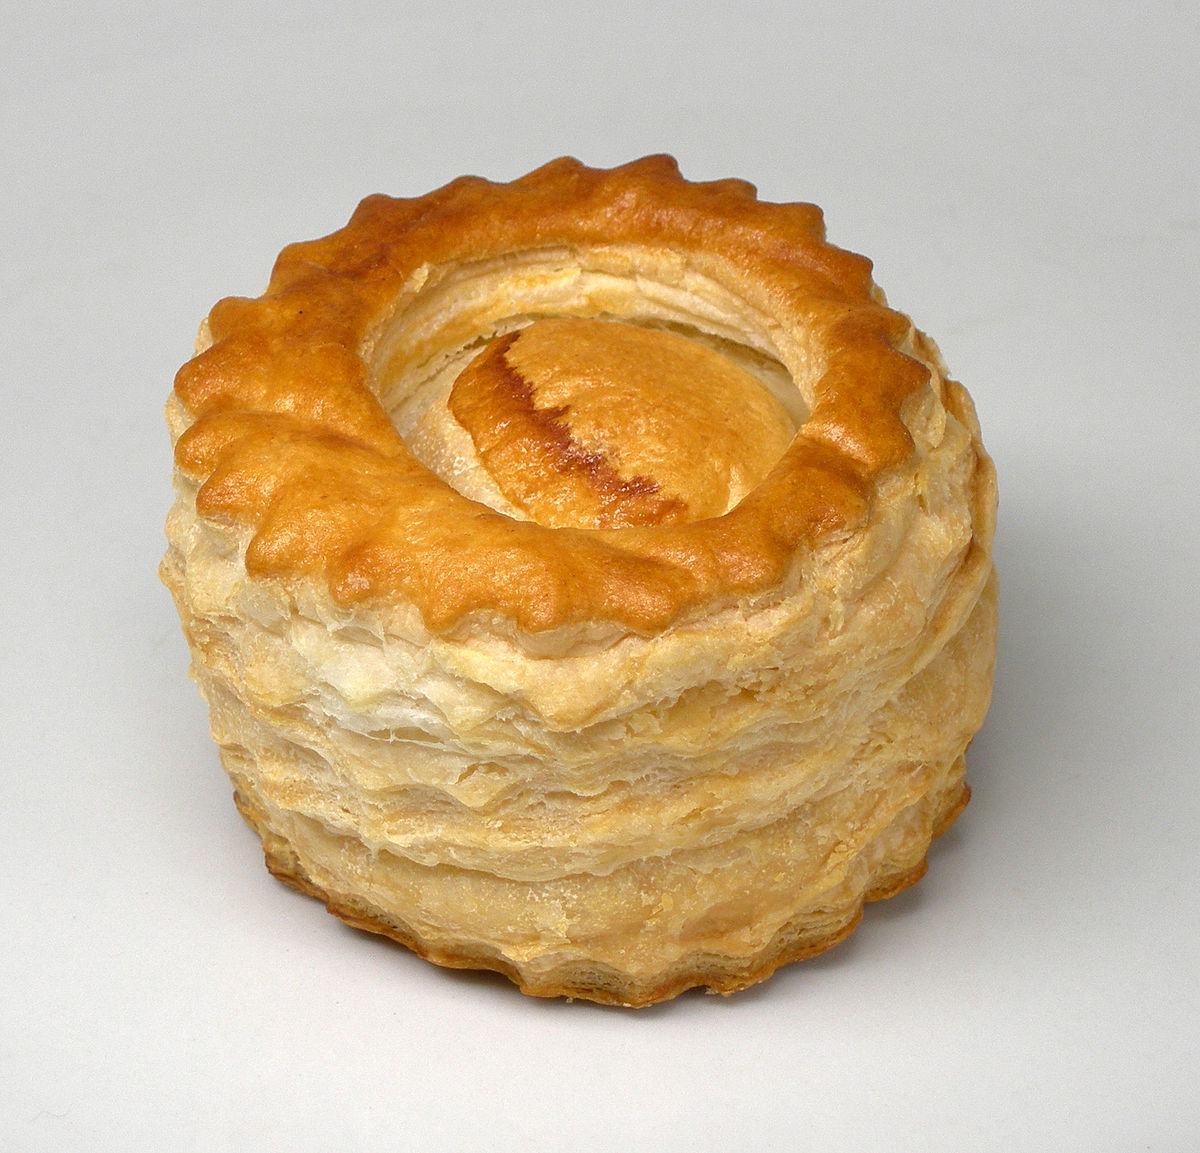 Vol au vent wikipedia wolna encyklopedia for Que es un canape